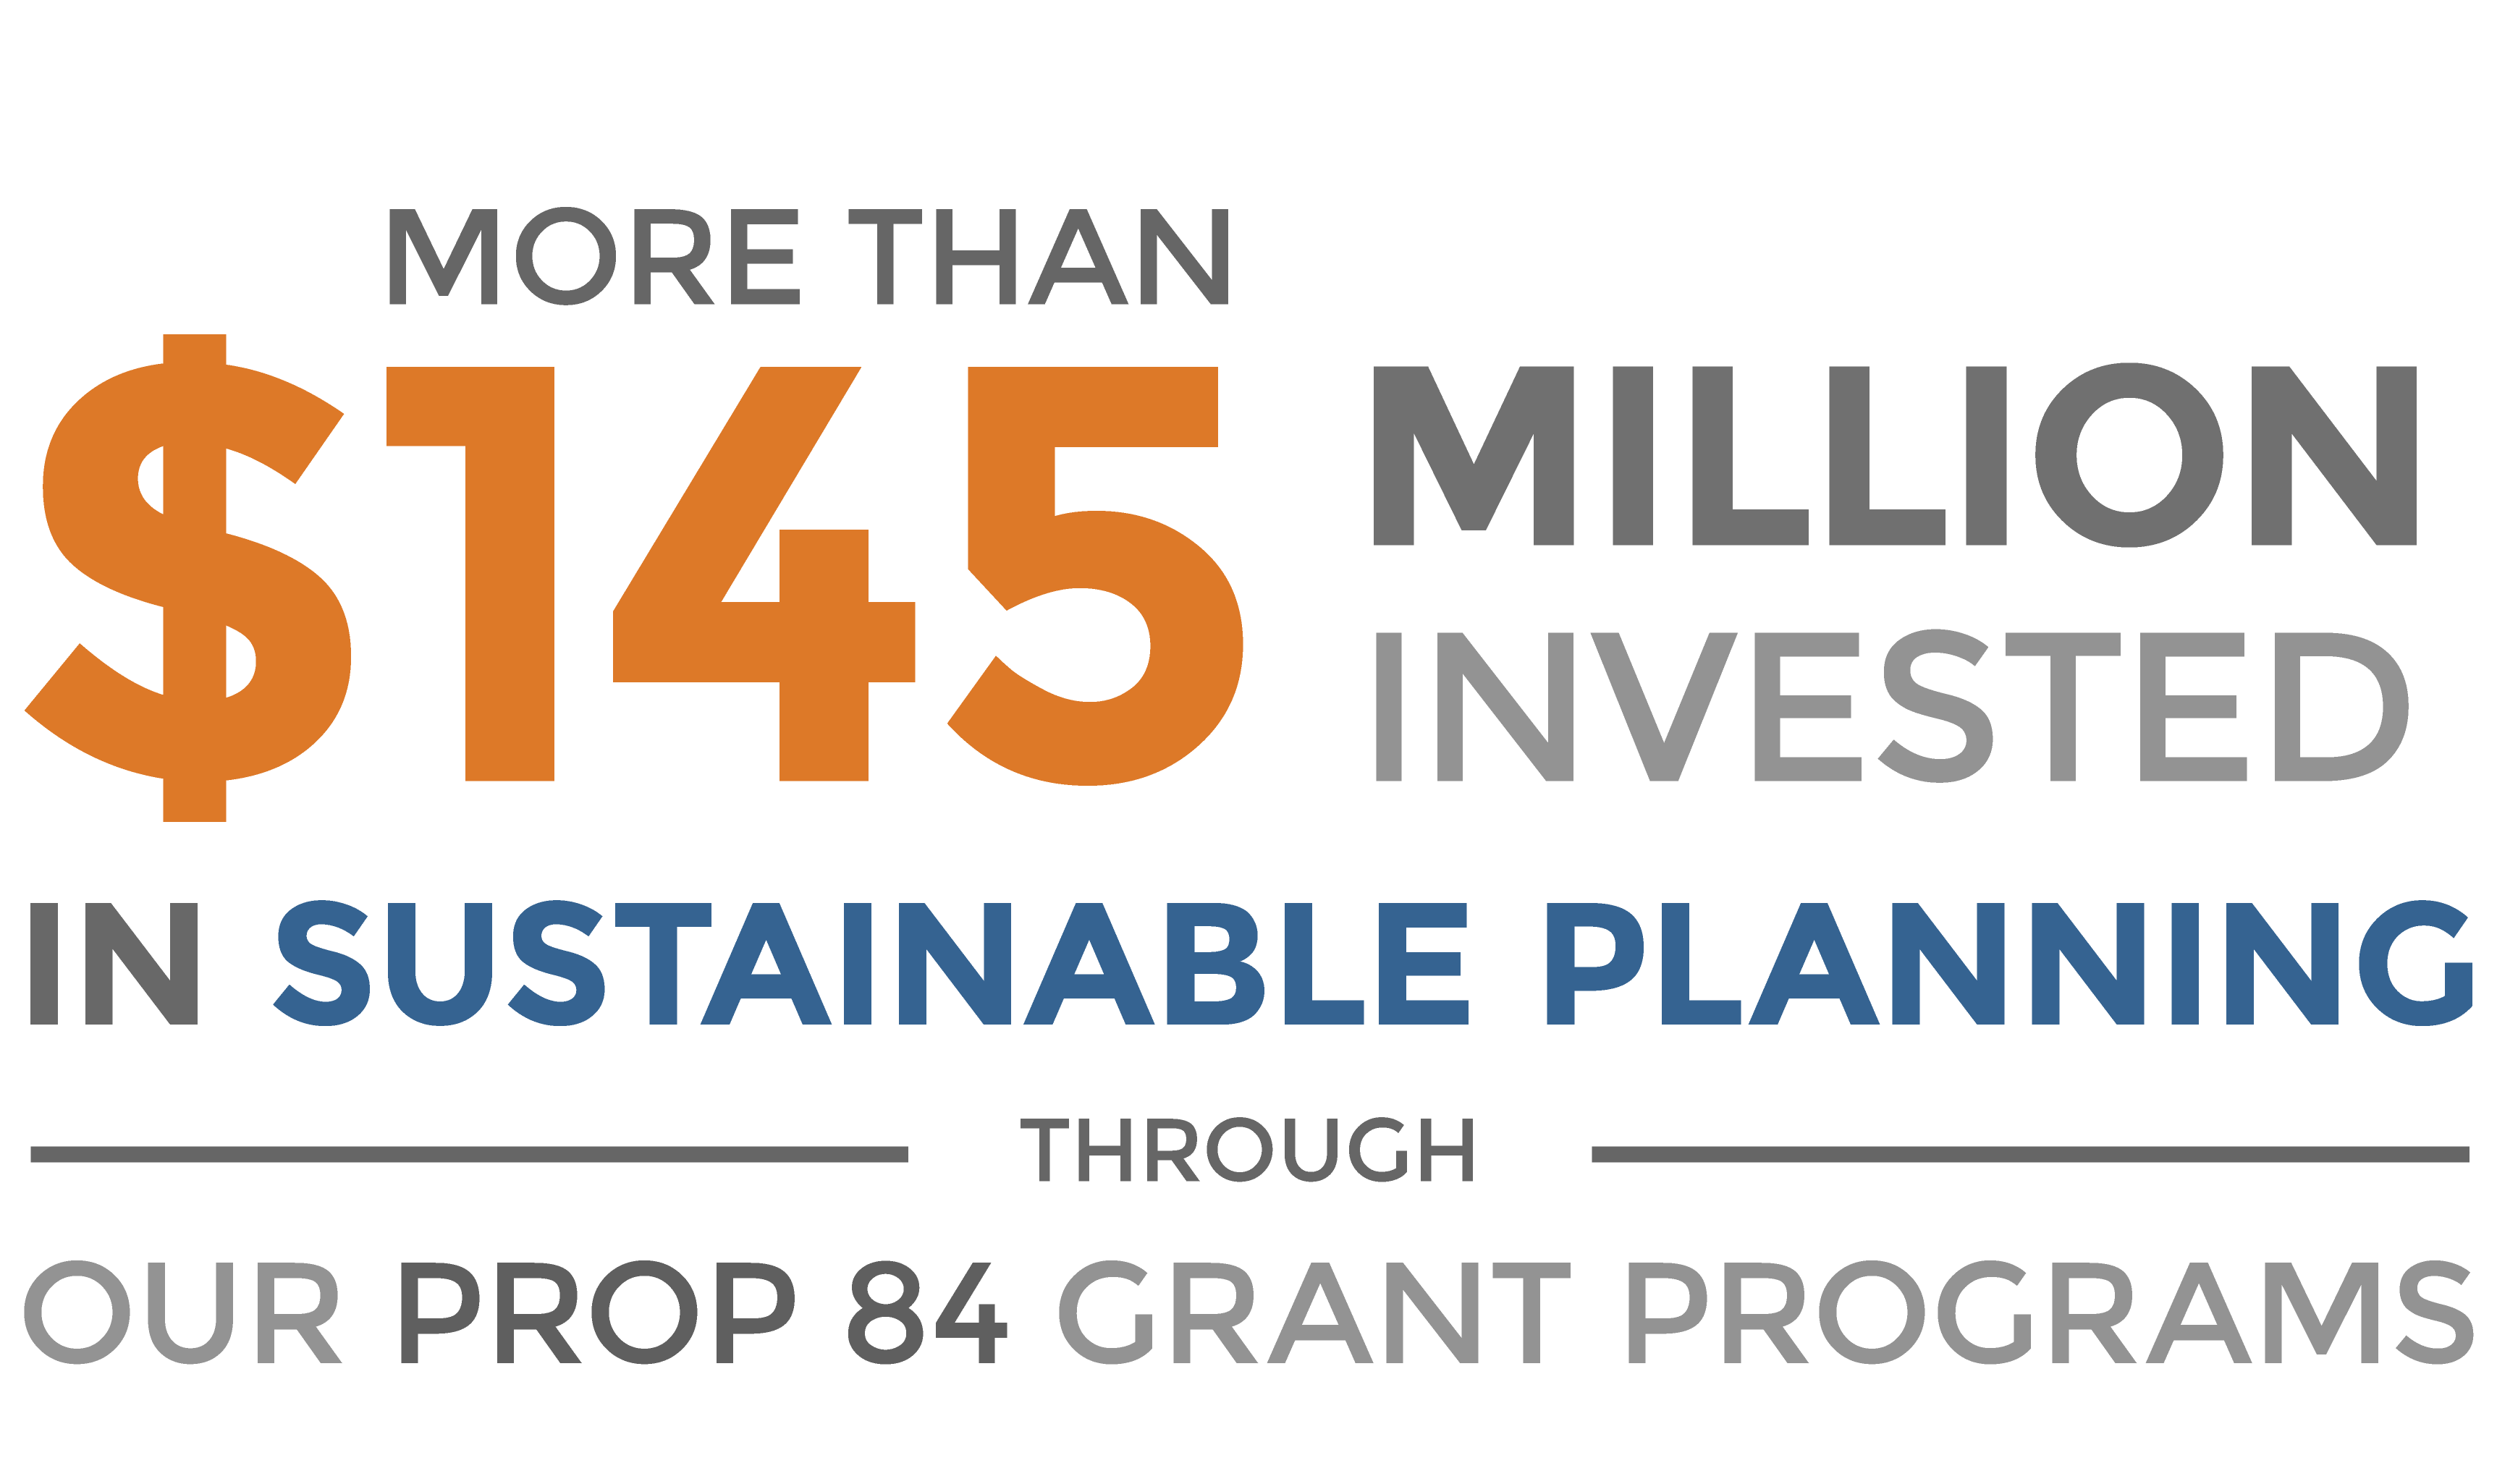 More than $129 million invested in sustainable planning through our Prop 84 grant programs.